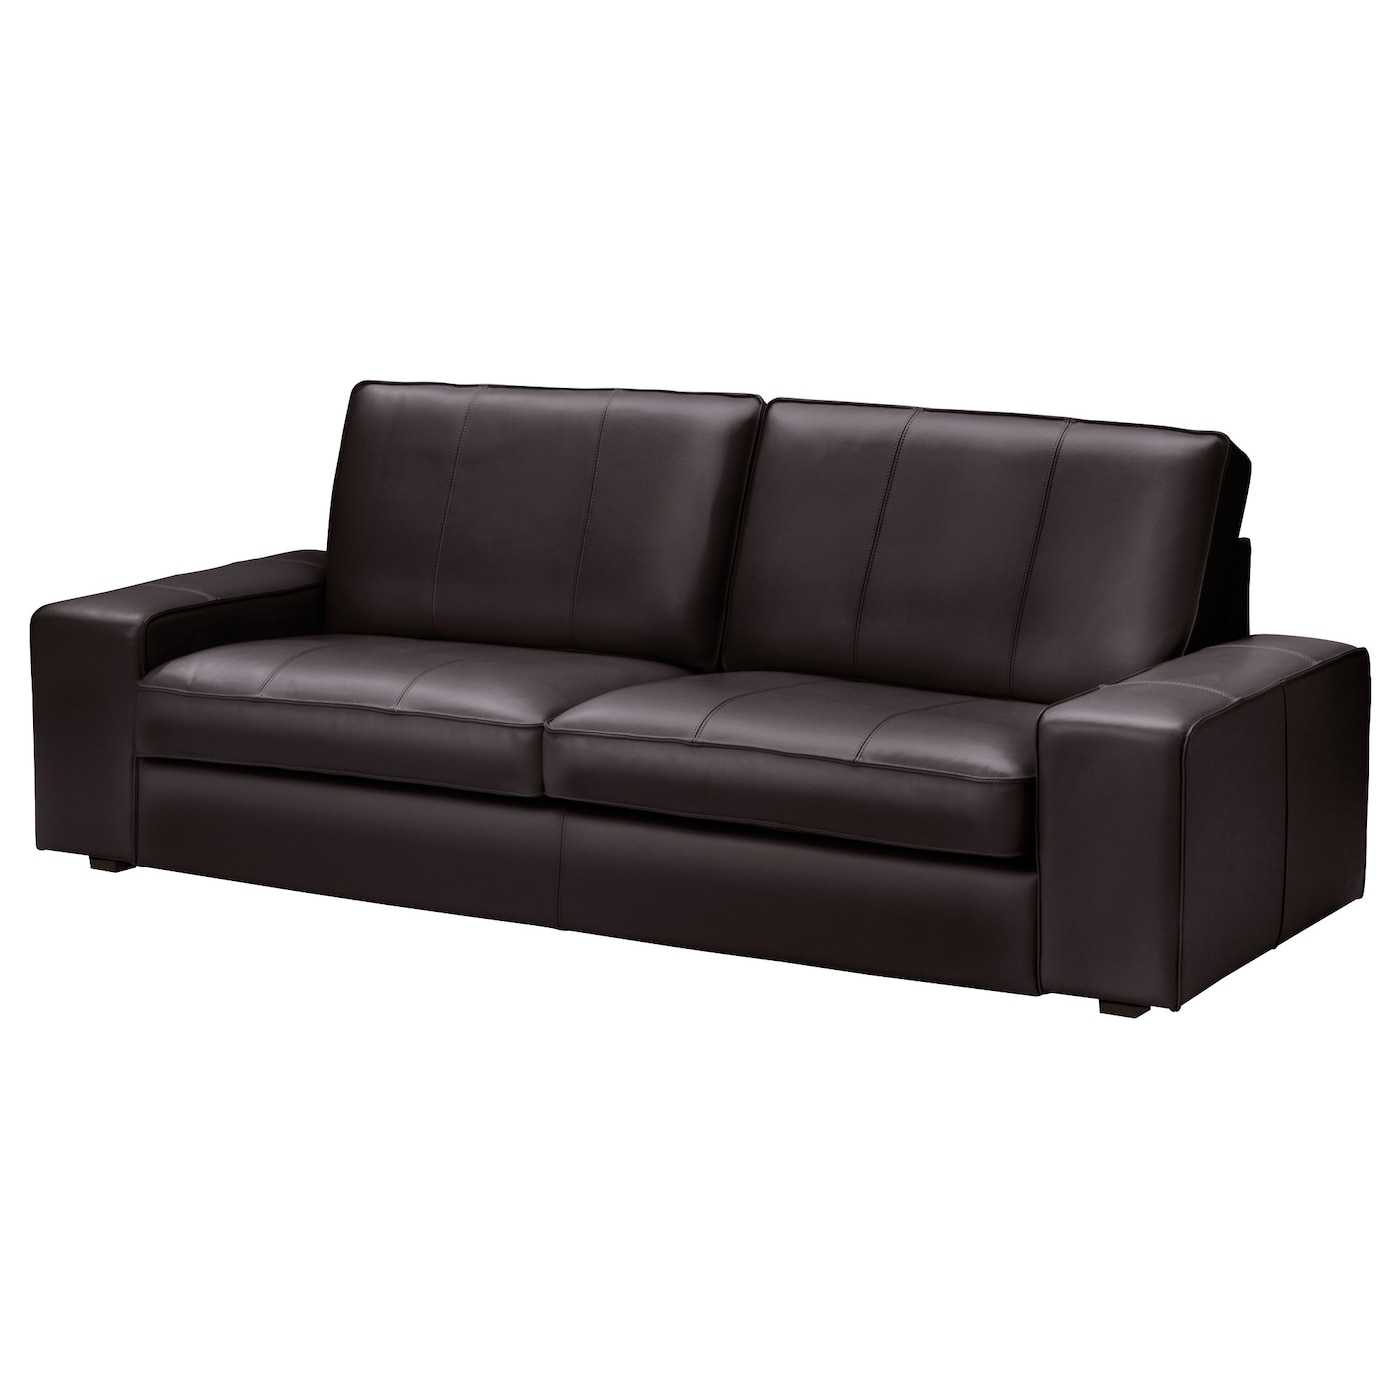 kivik three seat sofa grann bomstad dark brown ikea. Black Bedroom Furniture Sets. Home Design Ideas